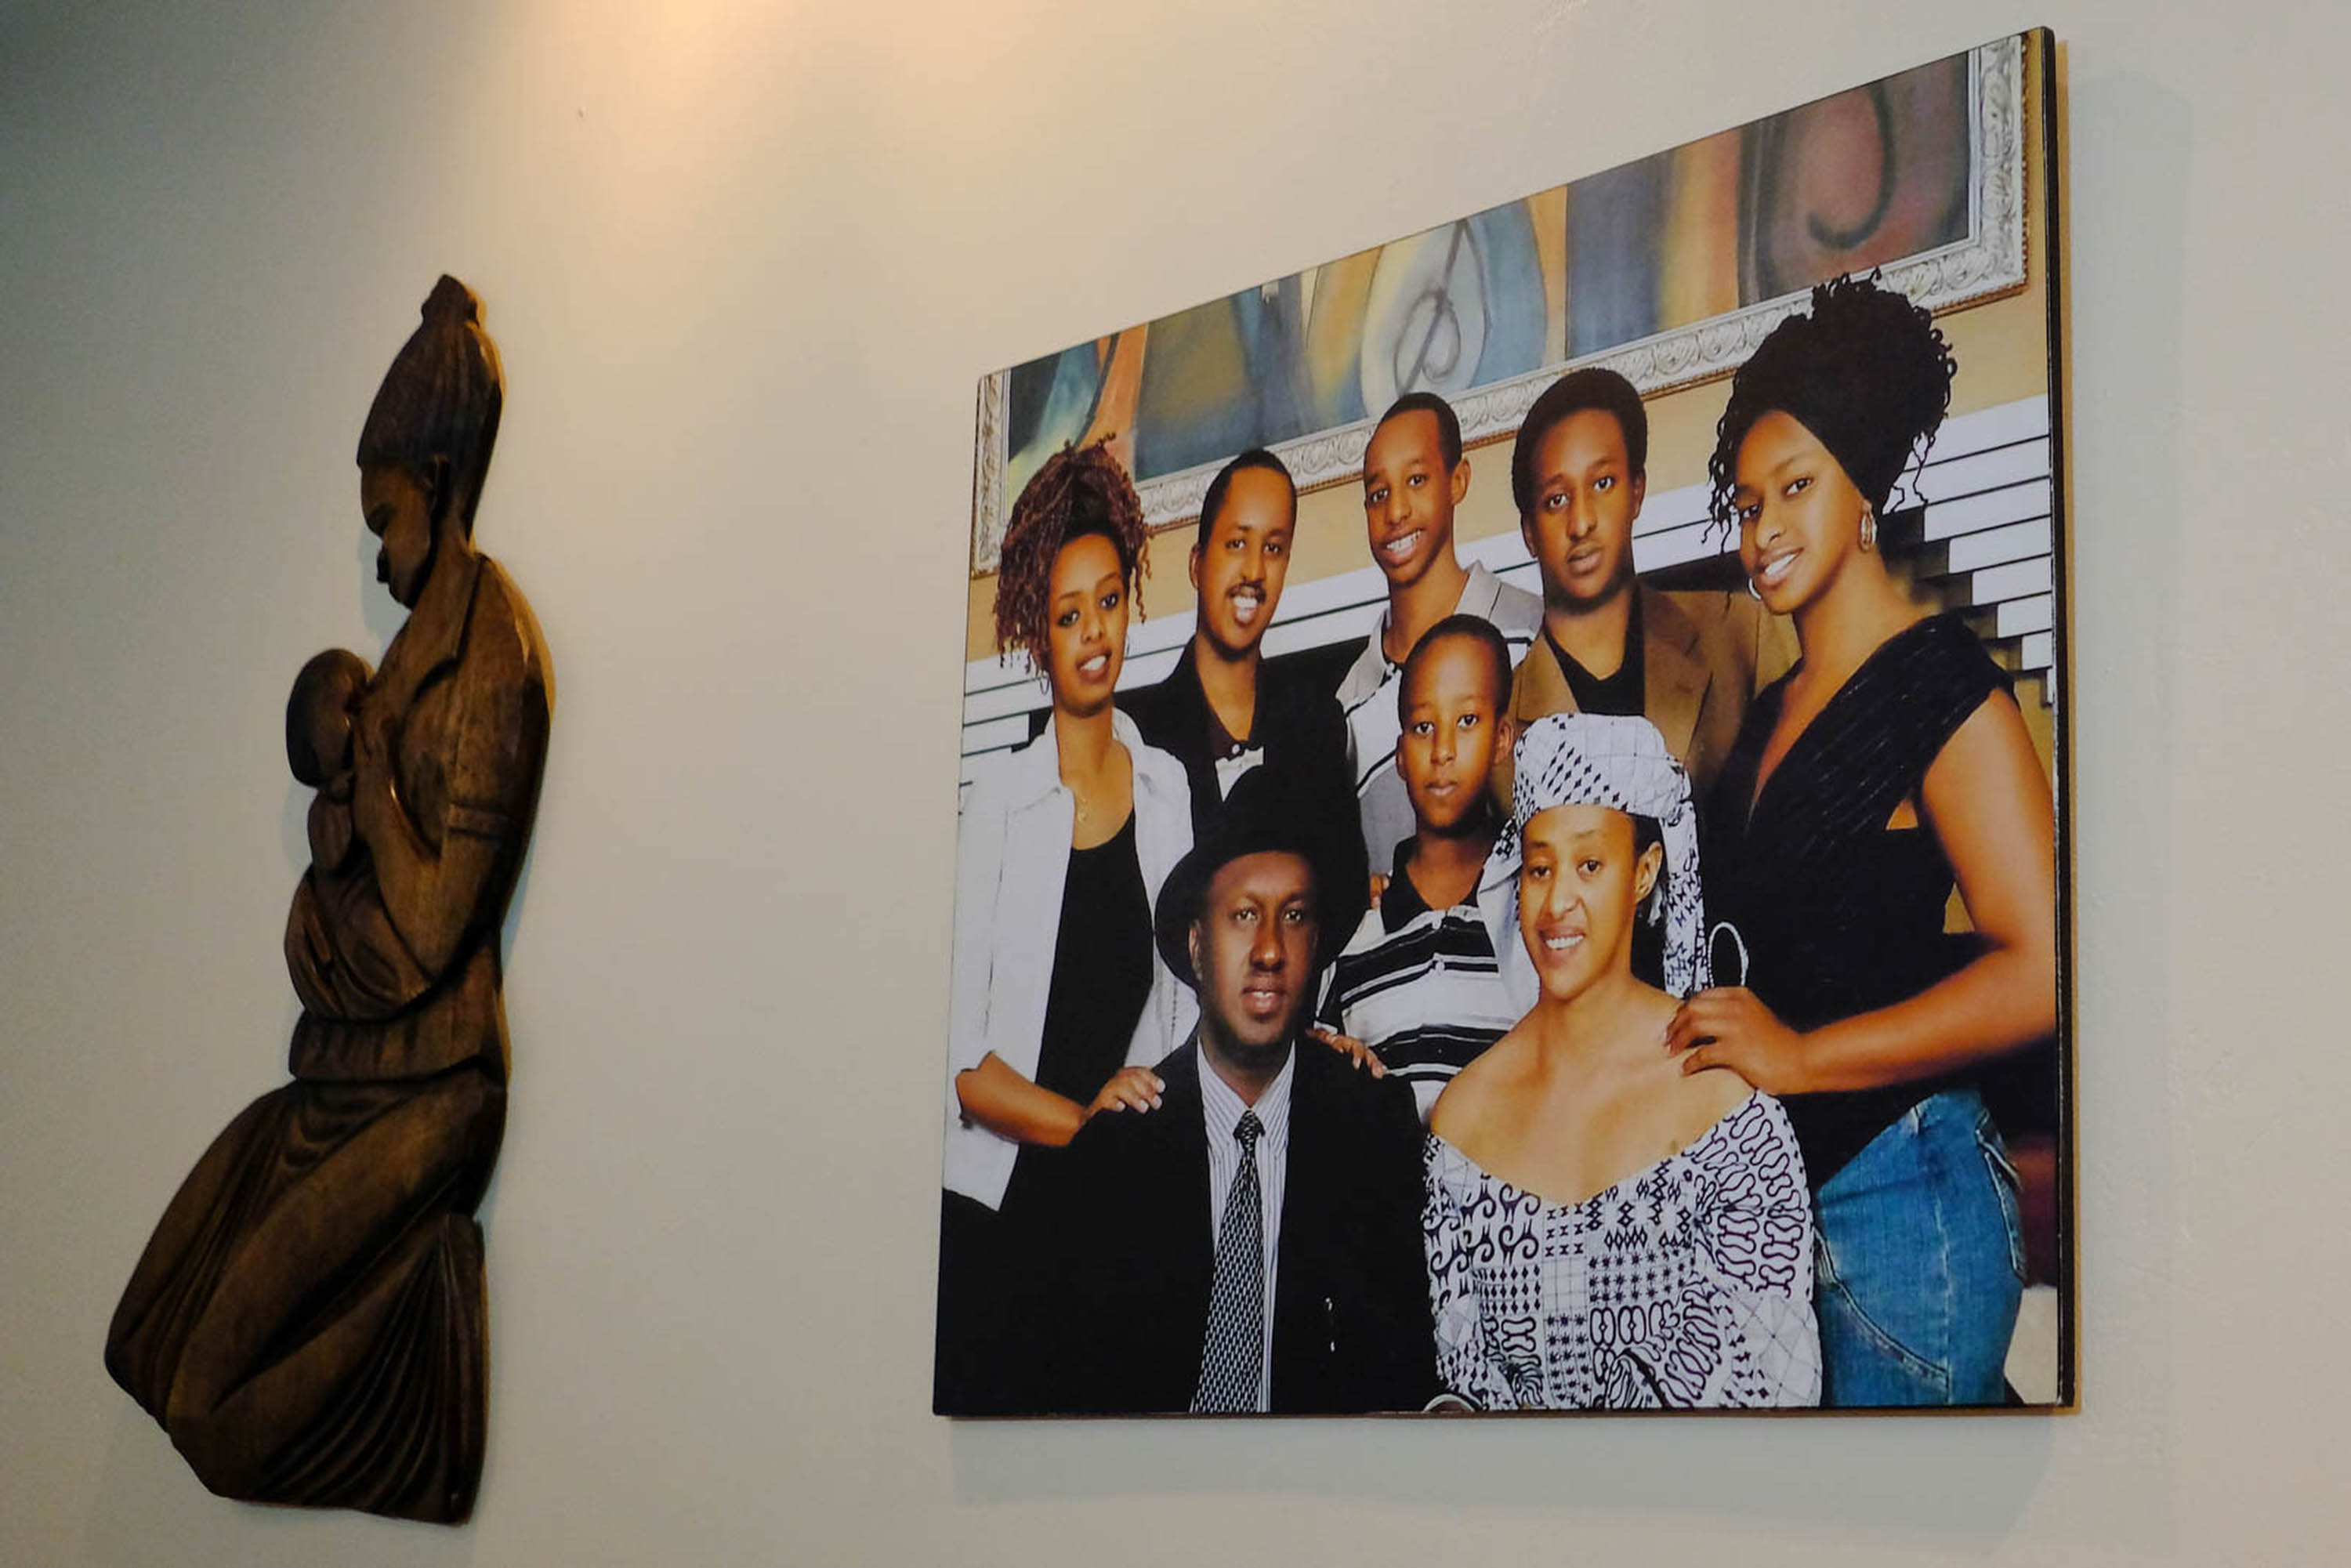 Diane Rwigara, far left, is seen in a family portrait at the Rwigara home in Kigali.